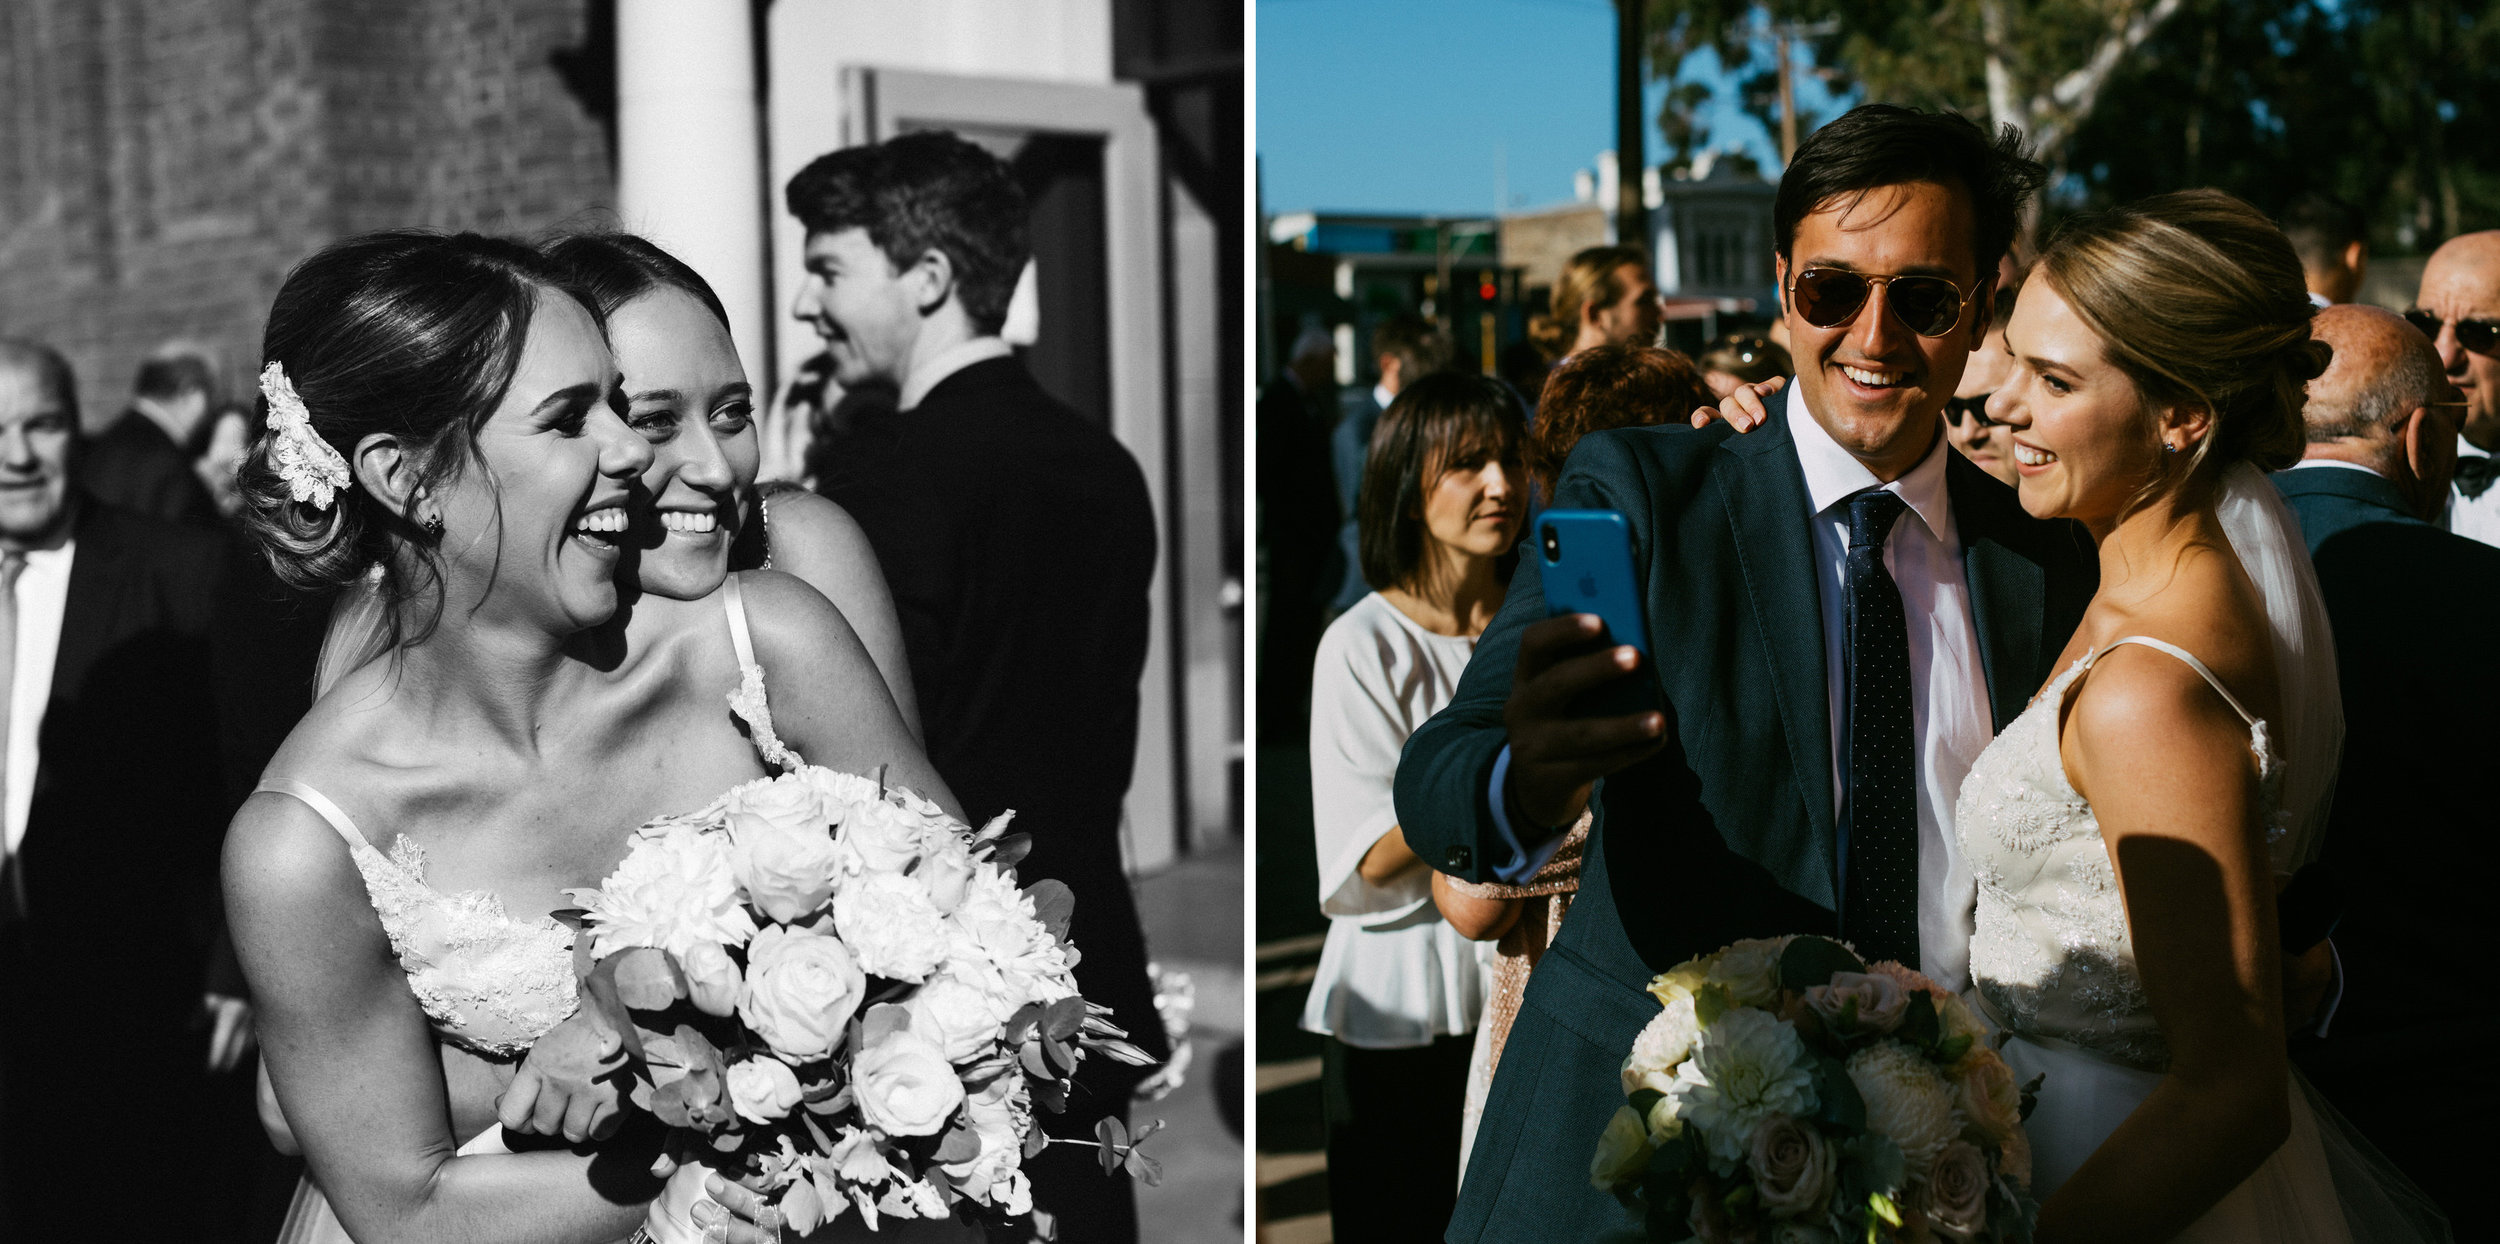 Adelaide Wedding 2019 083.jpg